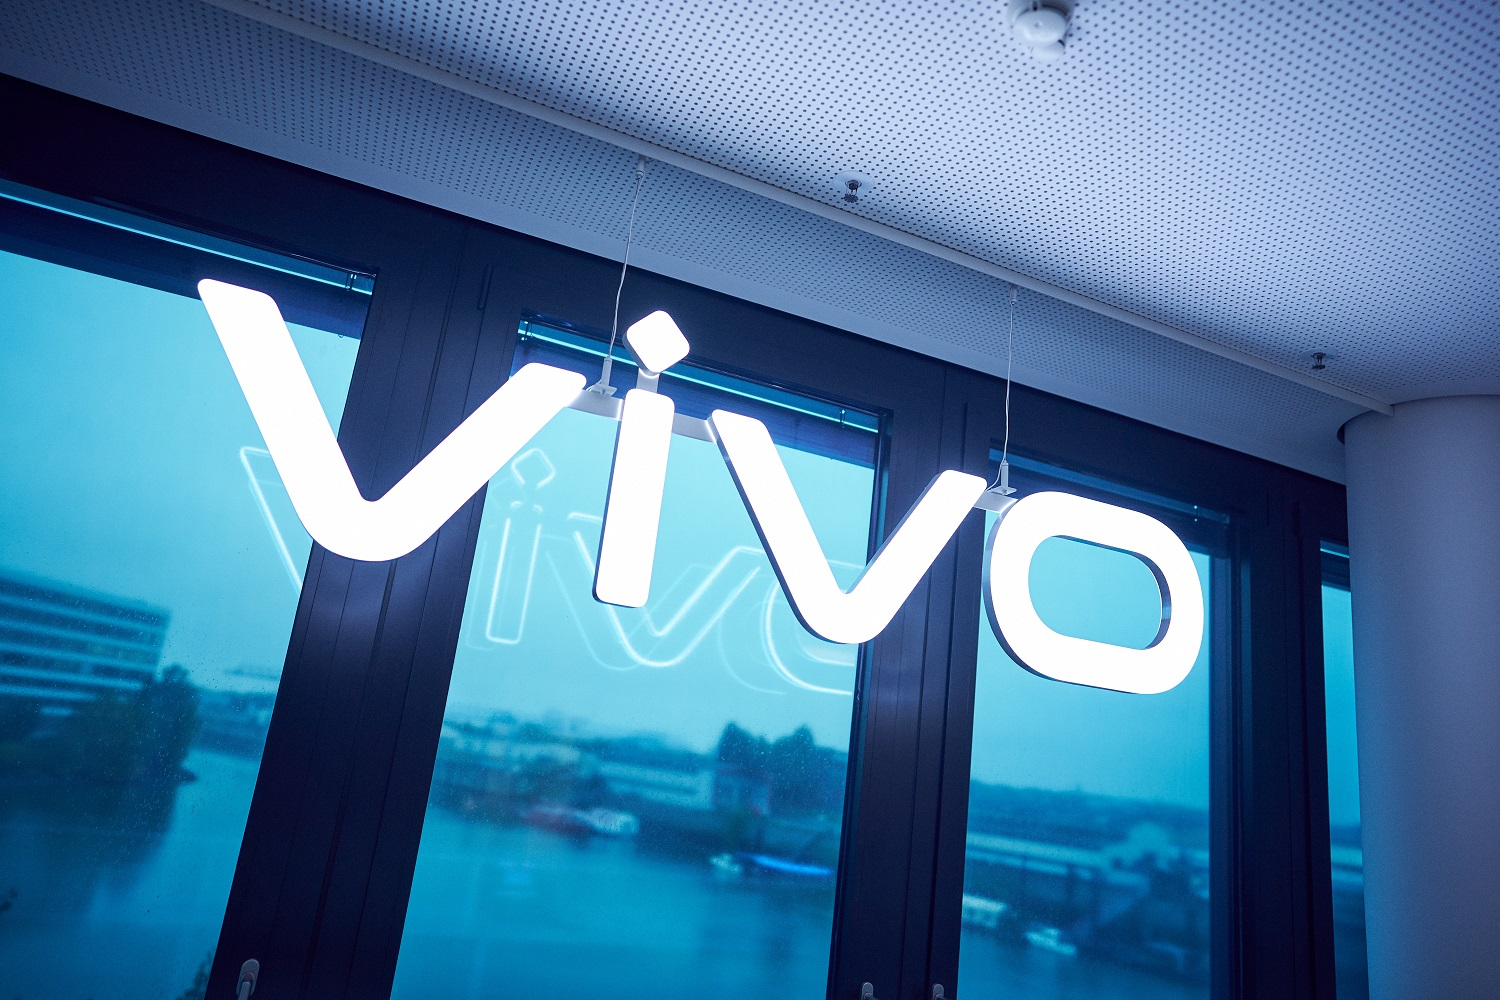 vivo Expands European Presence with Official Entry into Romanian and Czech Markets